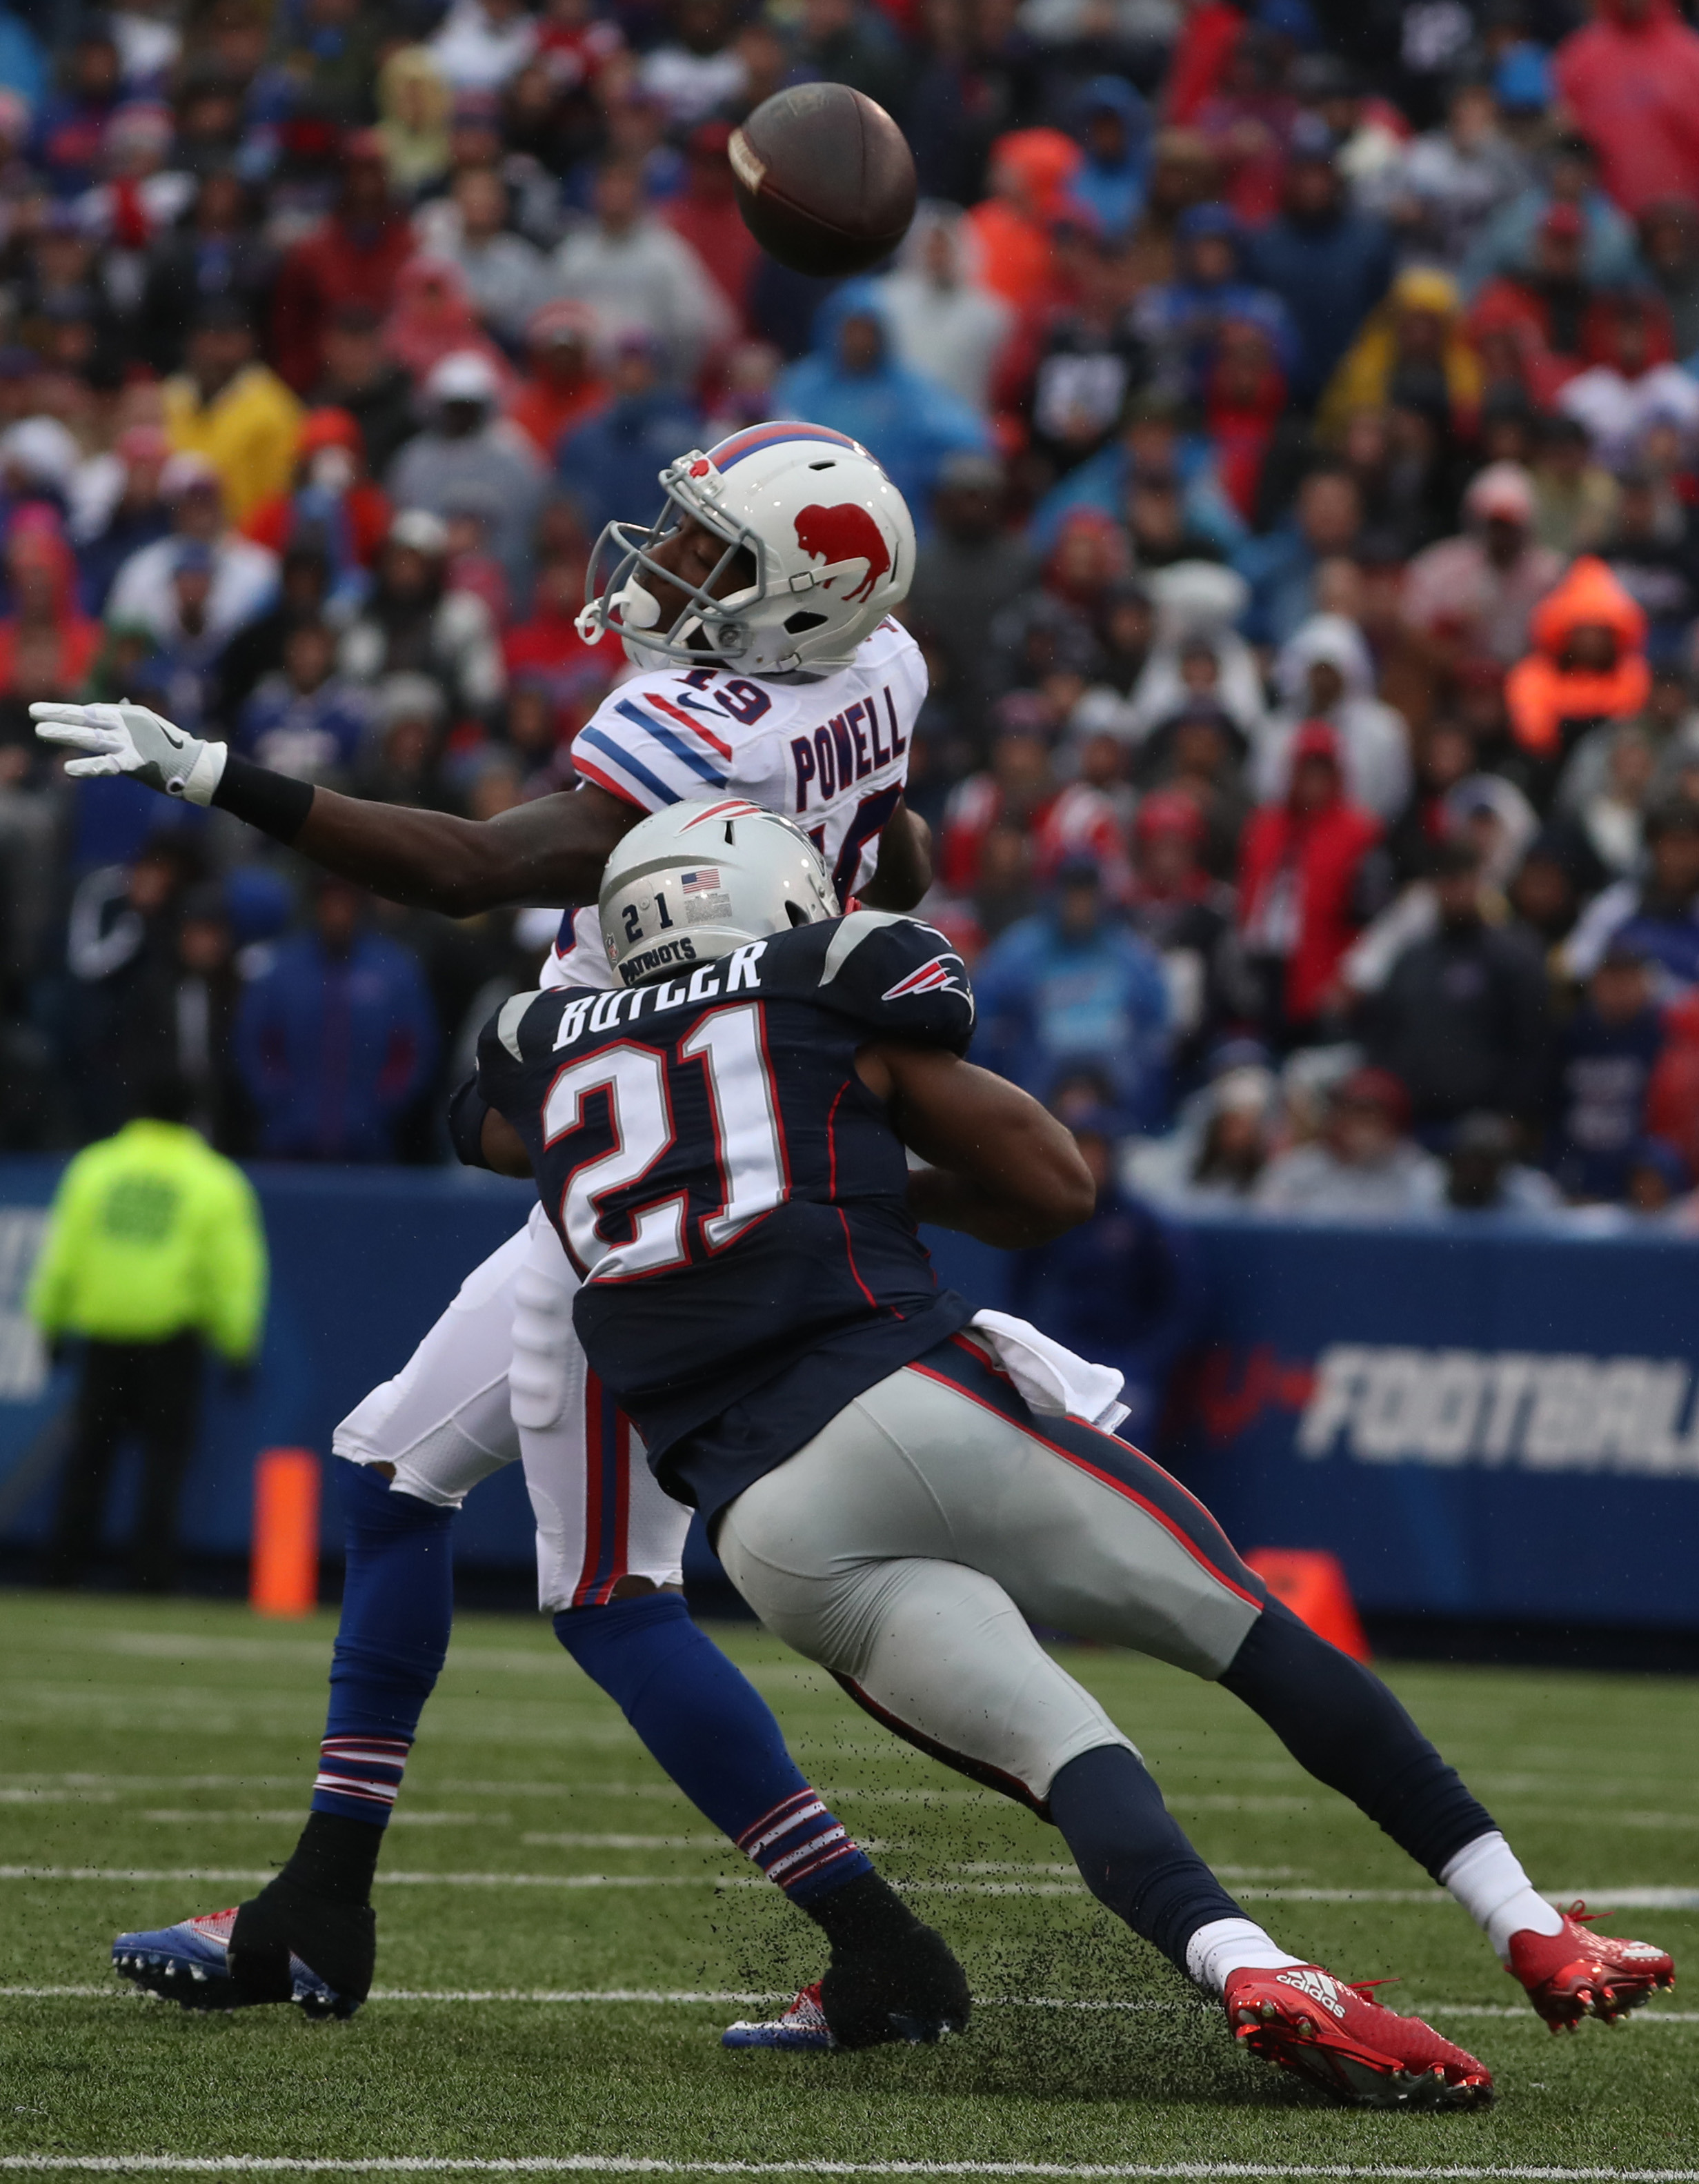 Buffalo Bills wide receiver Walt Powell (19) drops a pass whilecovered by New England Patriots cornerback Malcolm Butler (21) in the second quarter at New Era Field in Orchard Park, Sunday, Oct. 30, 2016. (James P. McCoy/Buffalo News)